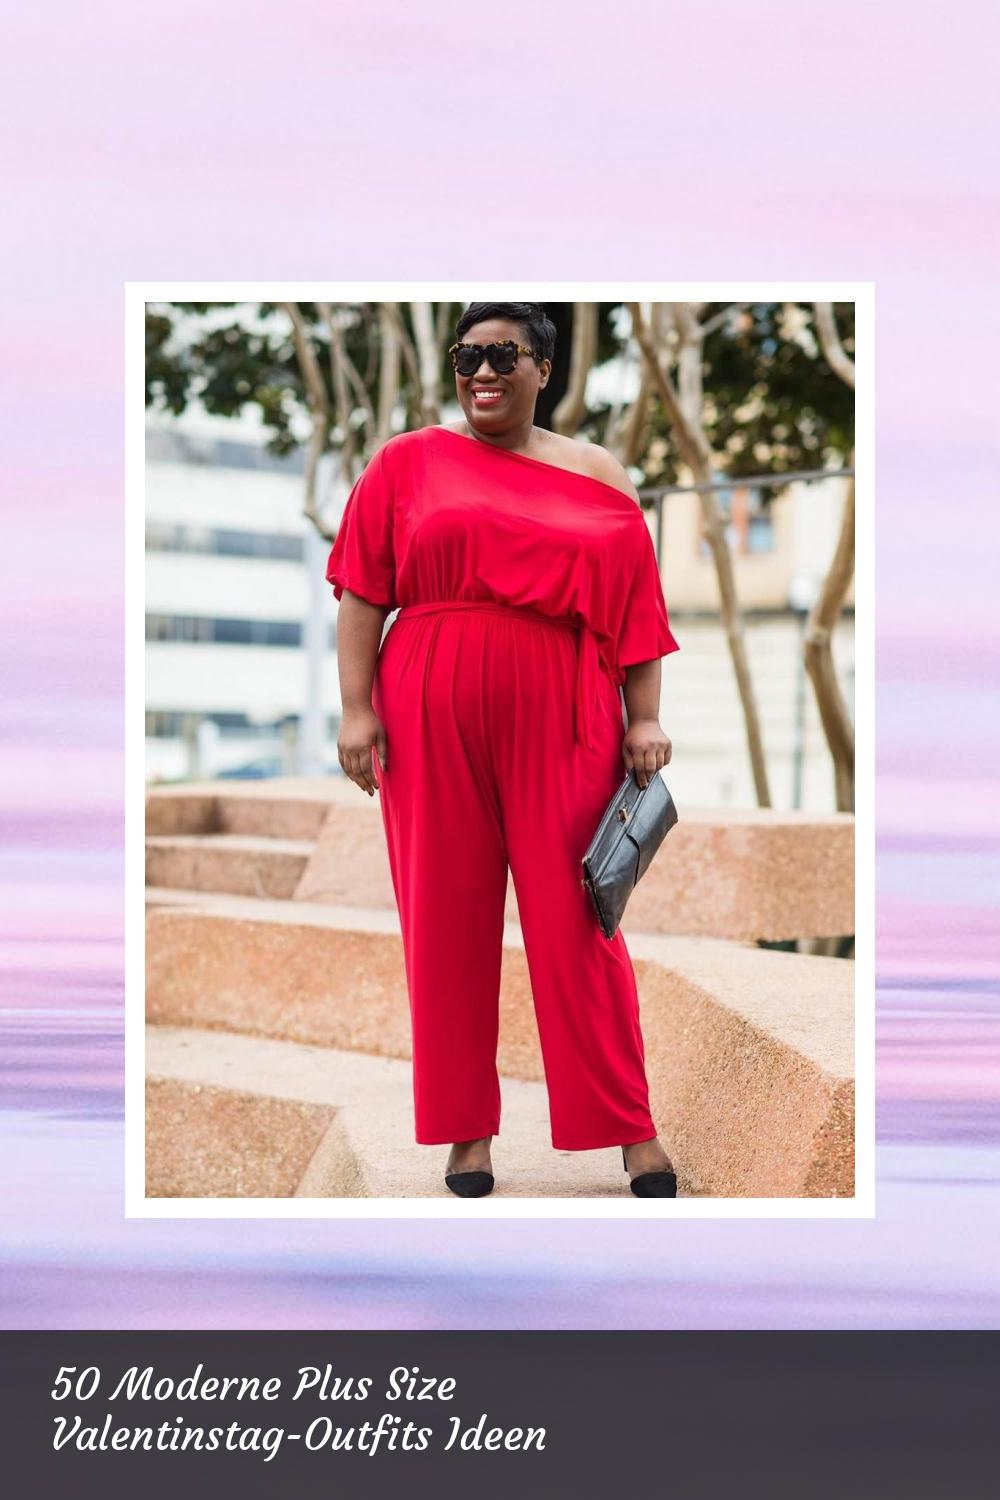 50 Moderne Plus Size Valentinstag-Outfits Ideen 12